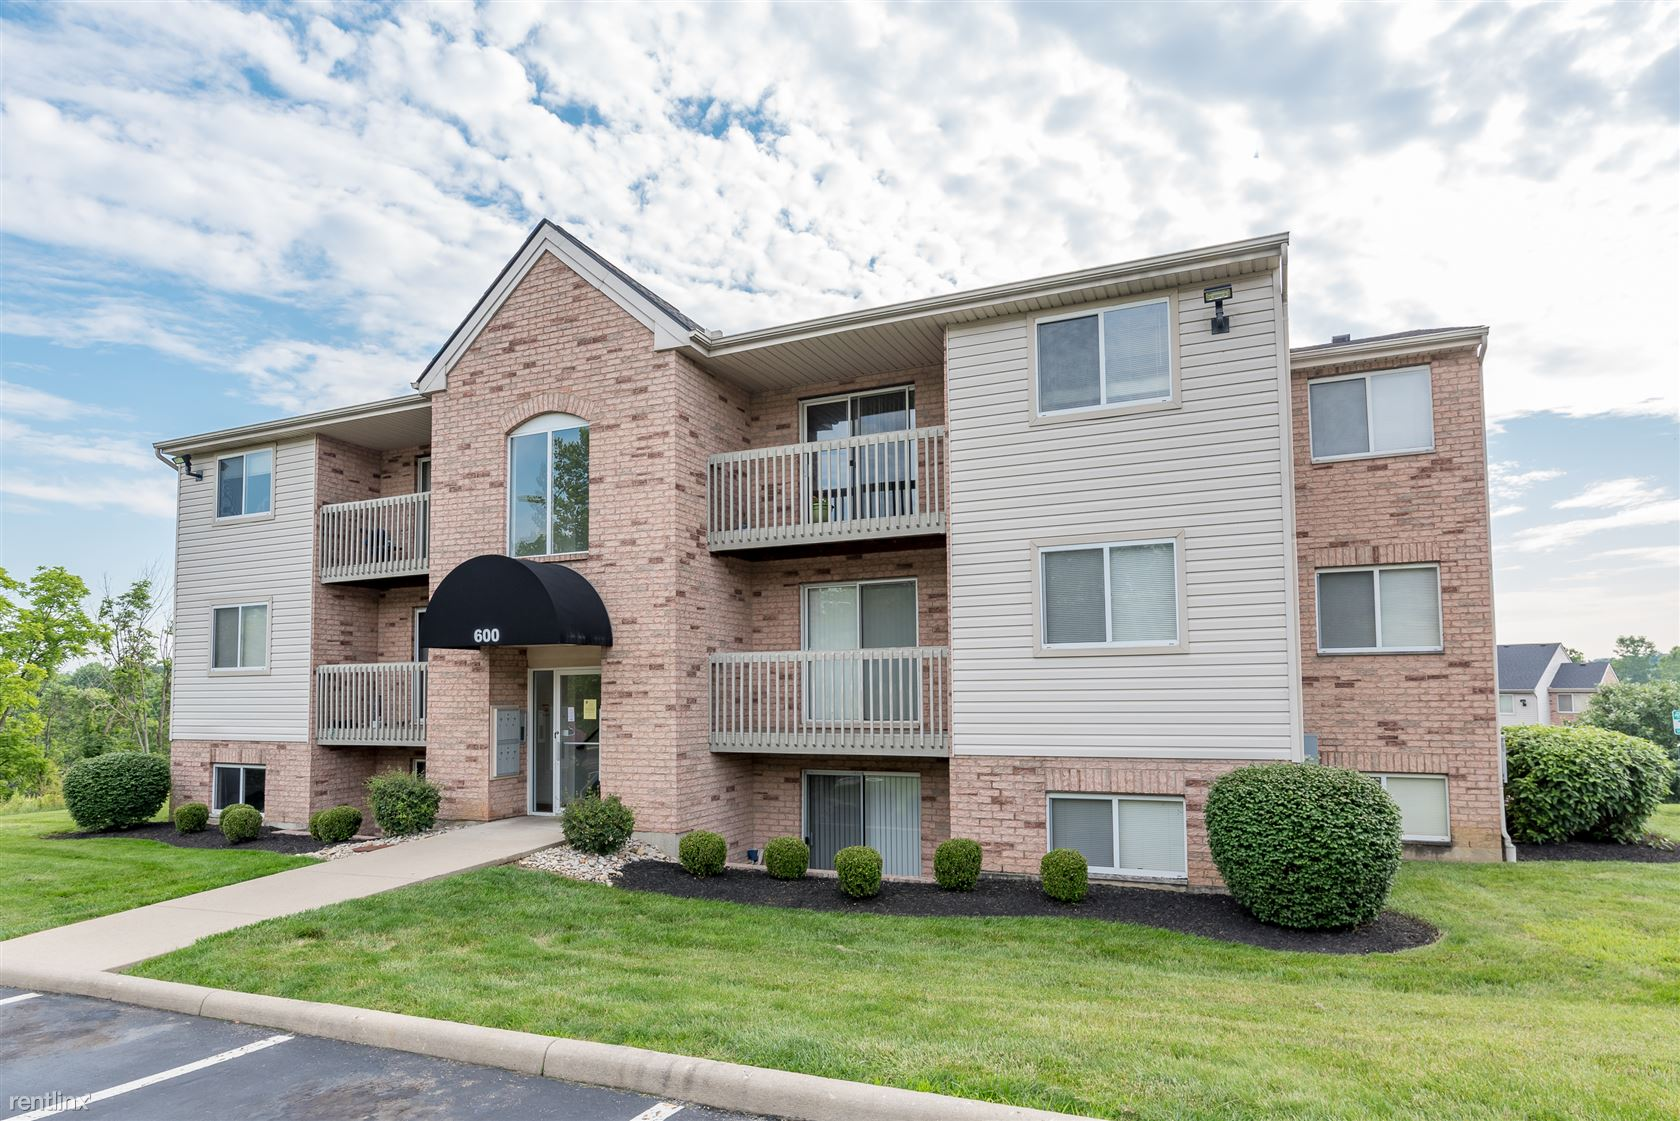 Deerfield Crossing Apartments